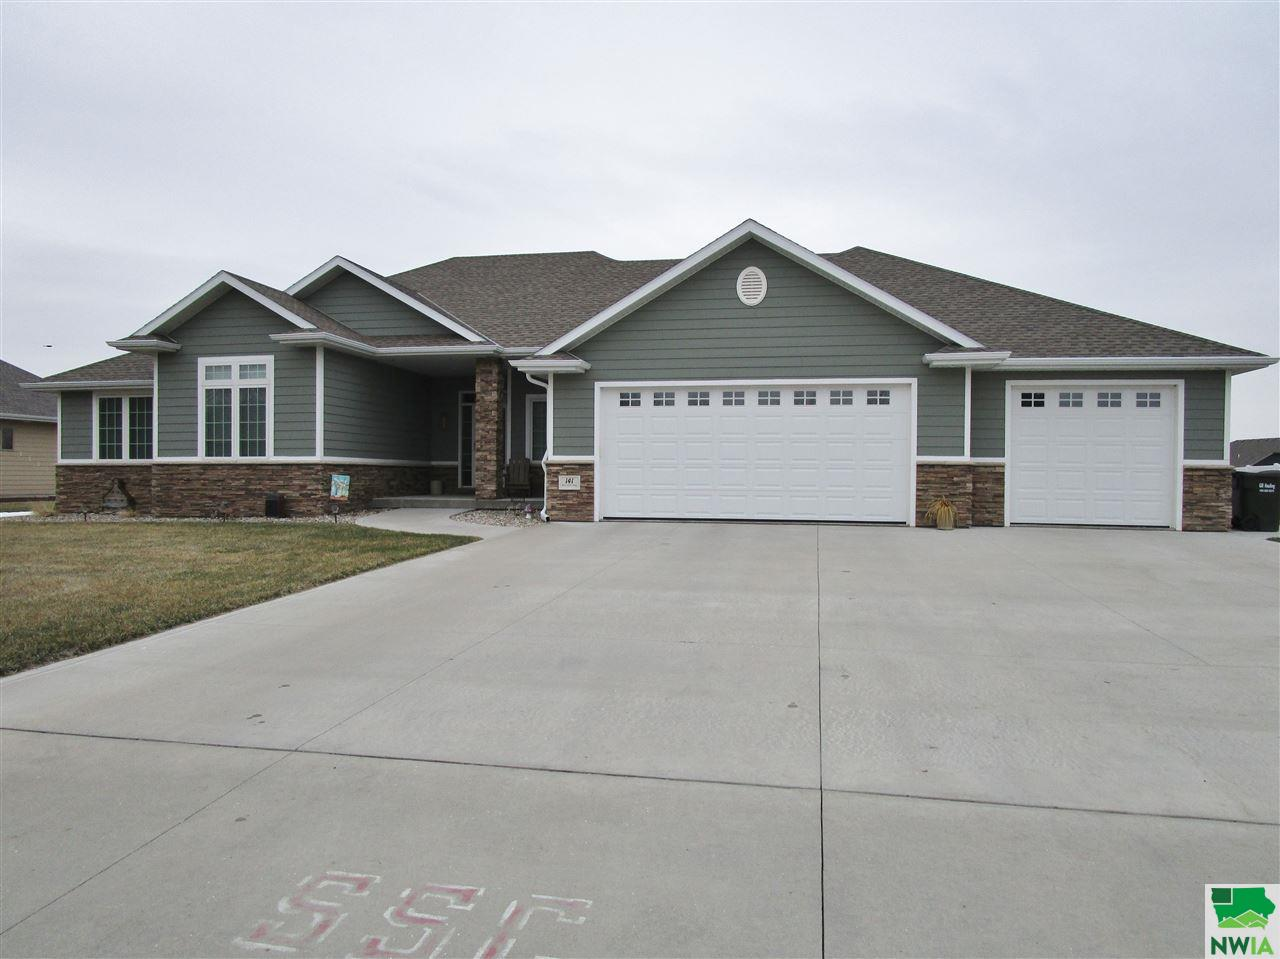 Property for sale at 141 Rottunda Way, South Sioux City,  NE 68776